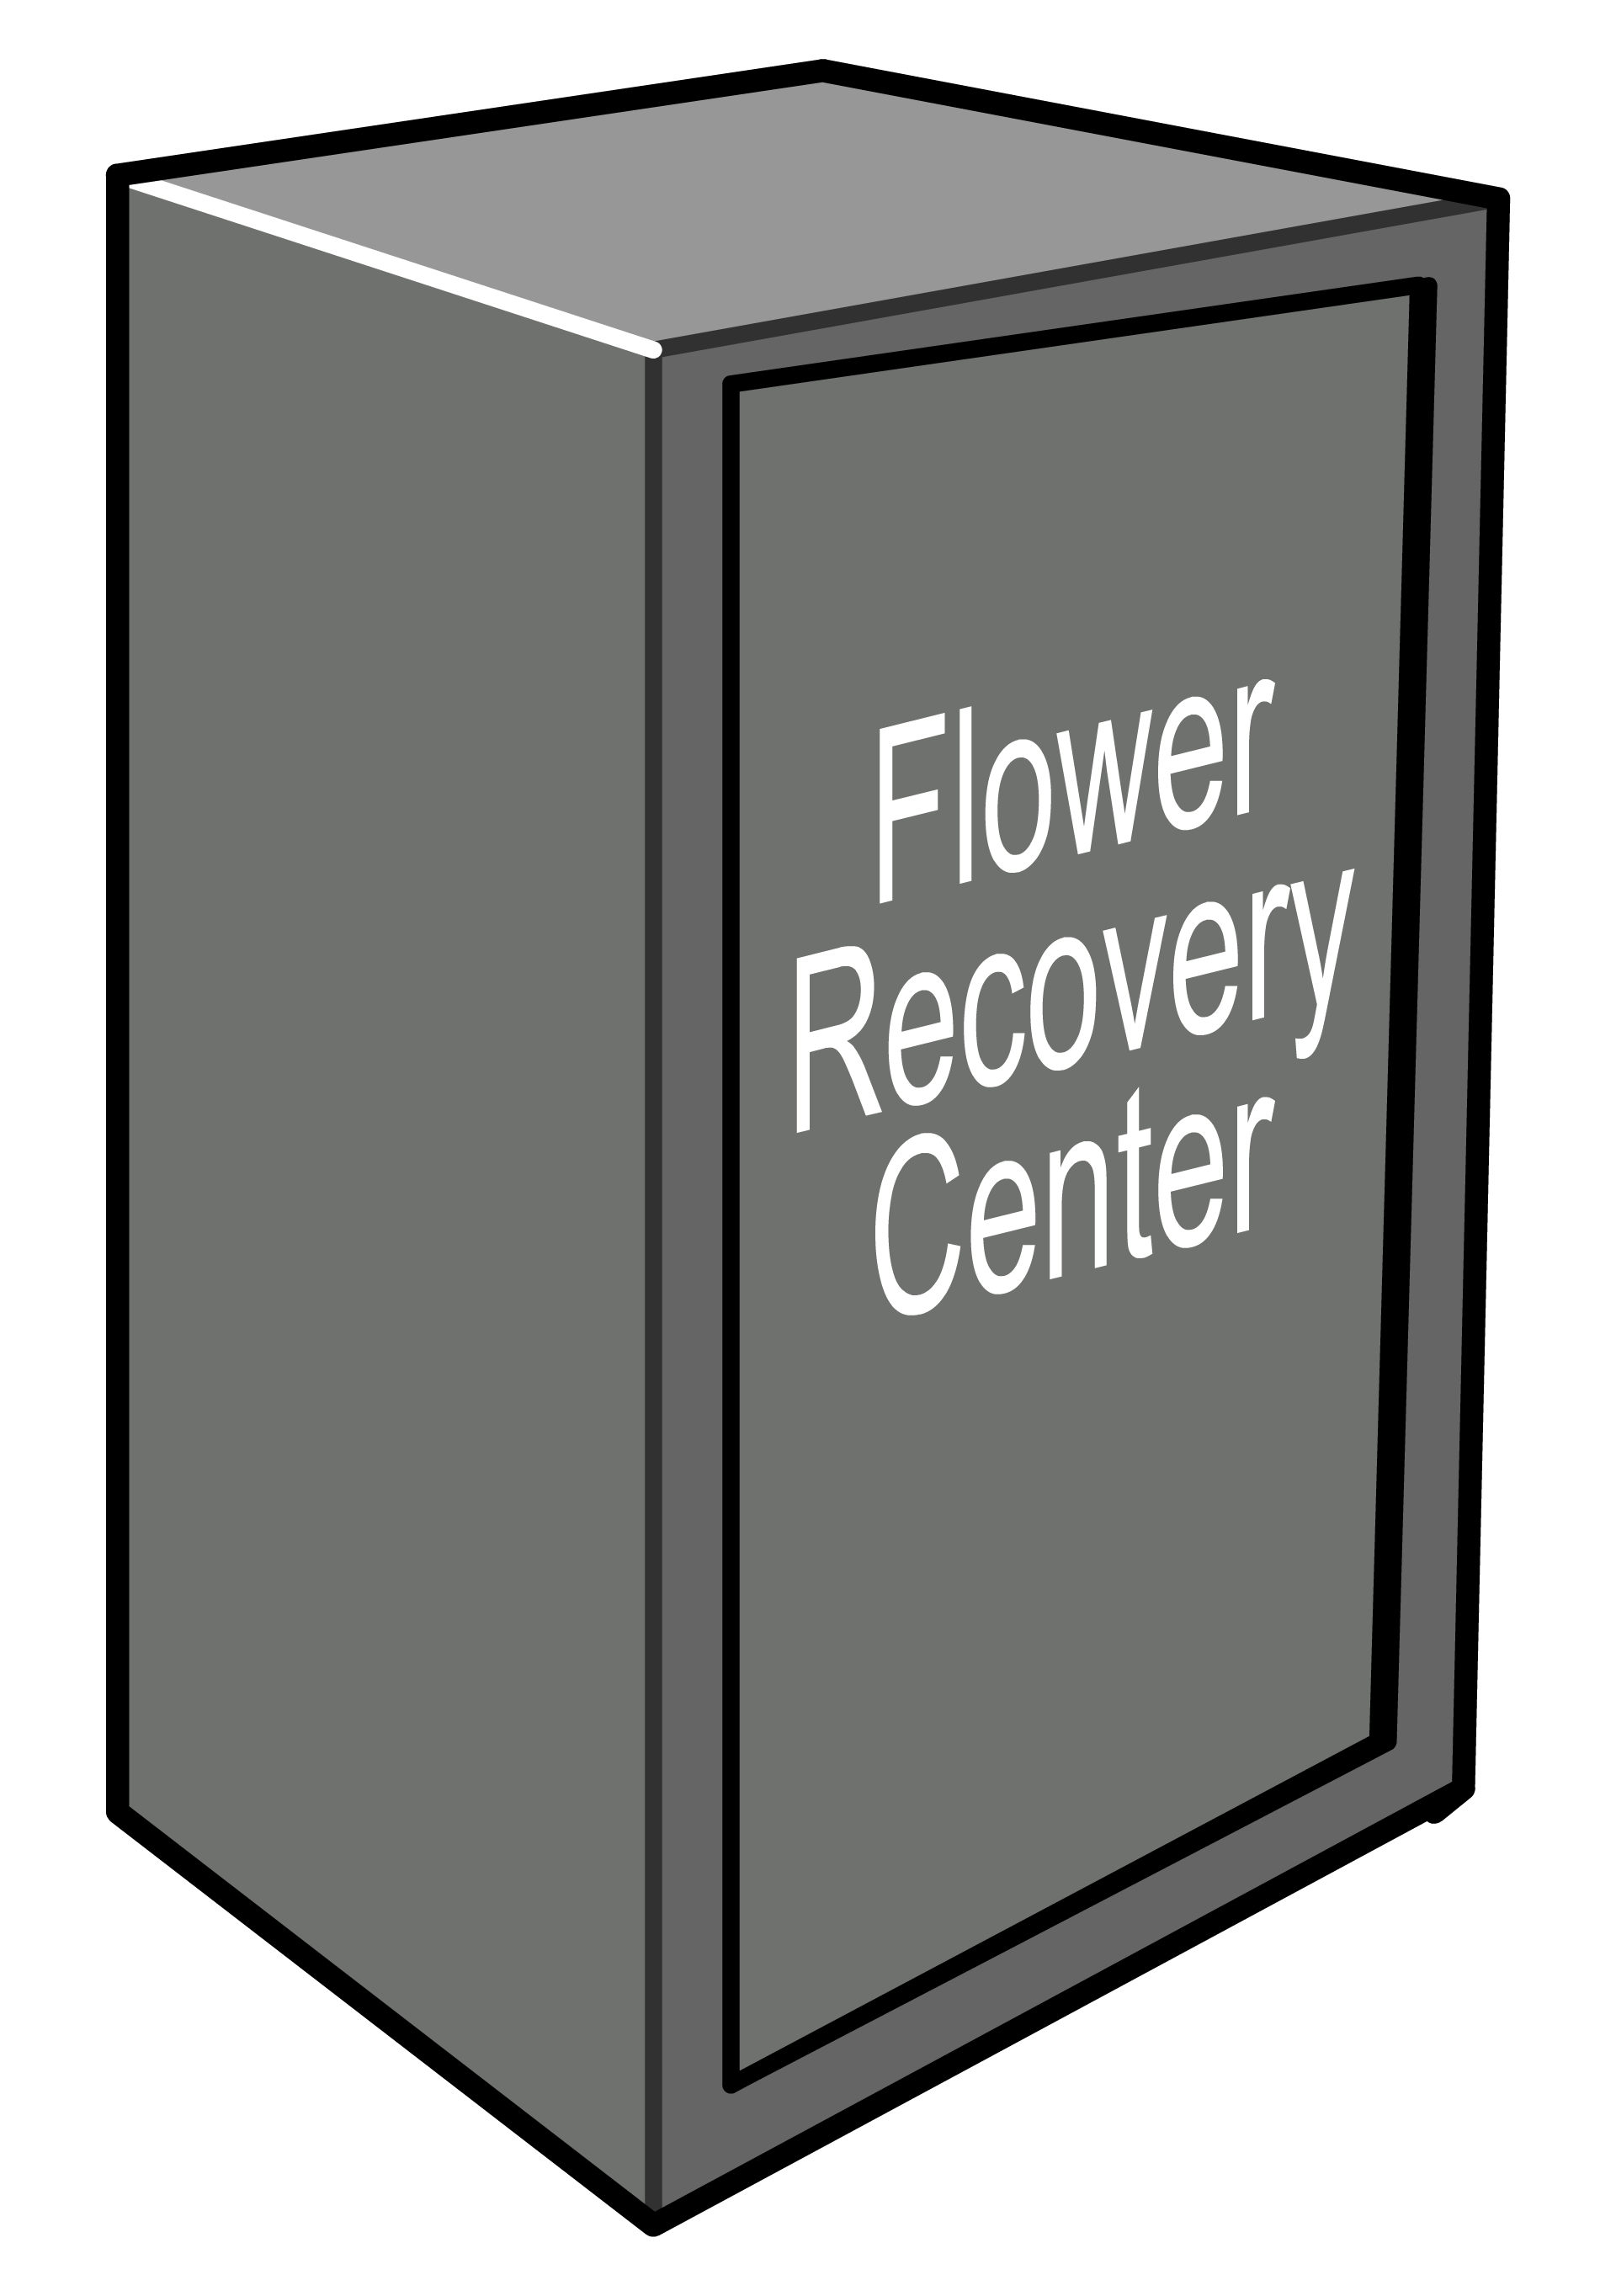 Flower recovery center